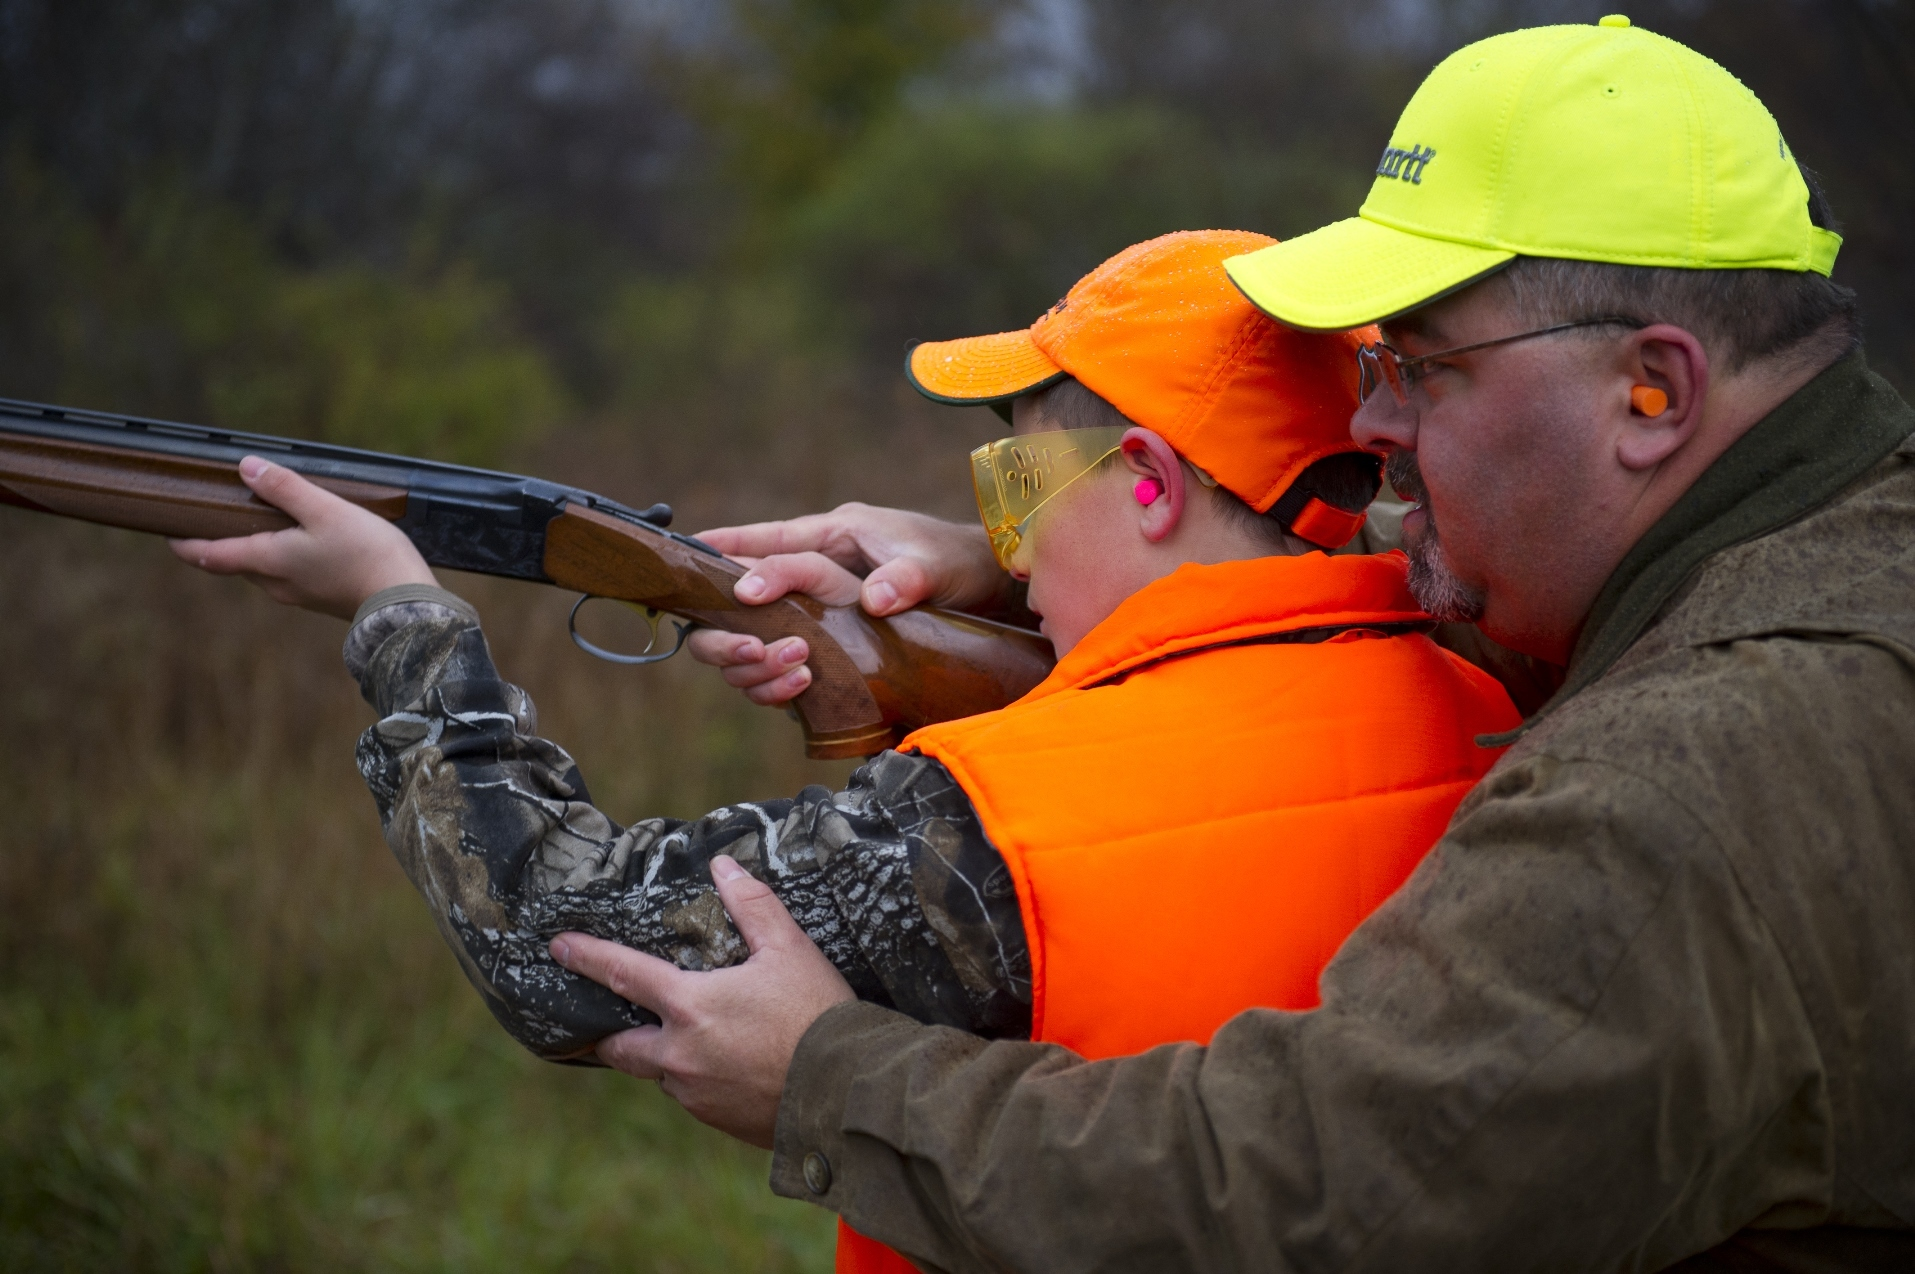 Volunteers drive Michigan's hunter education program, with about 20,000 students instructed each year.